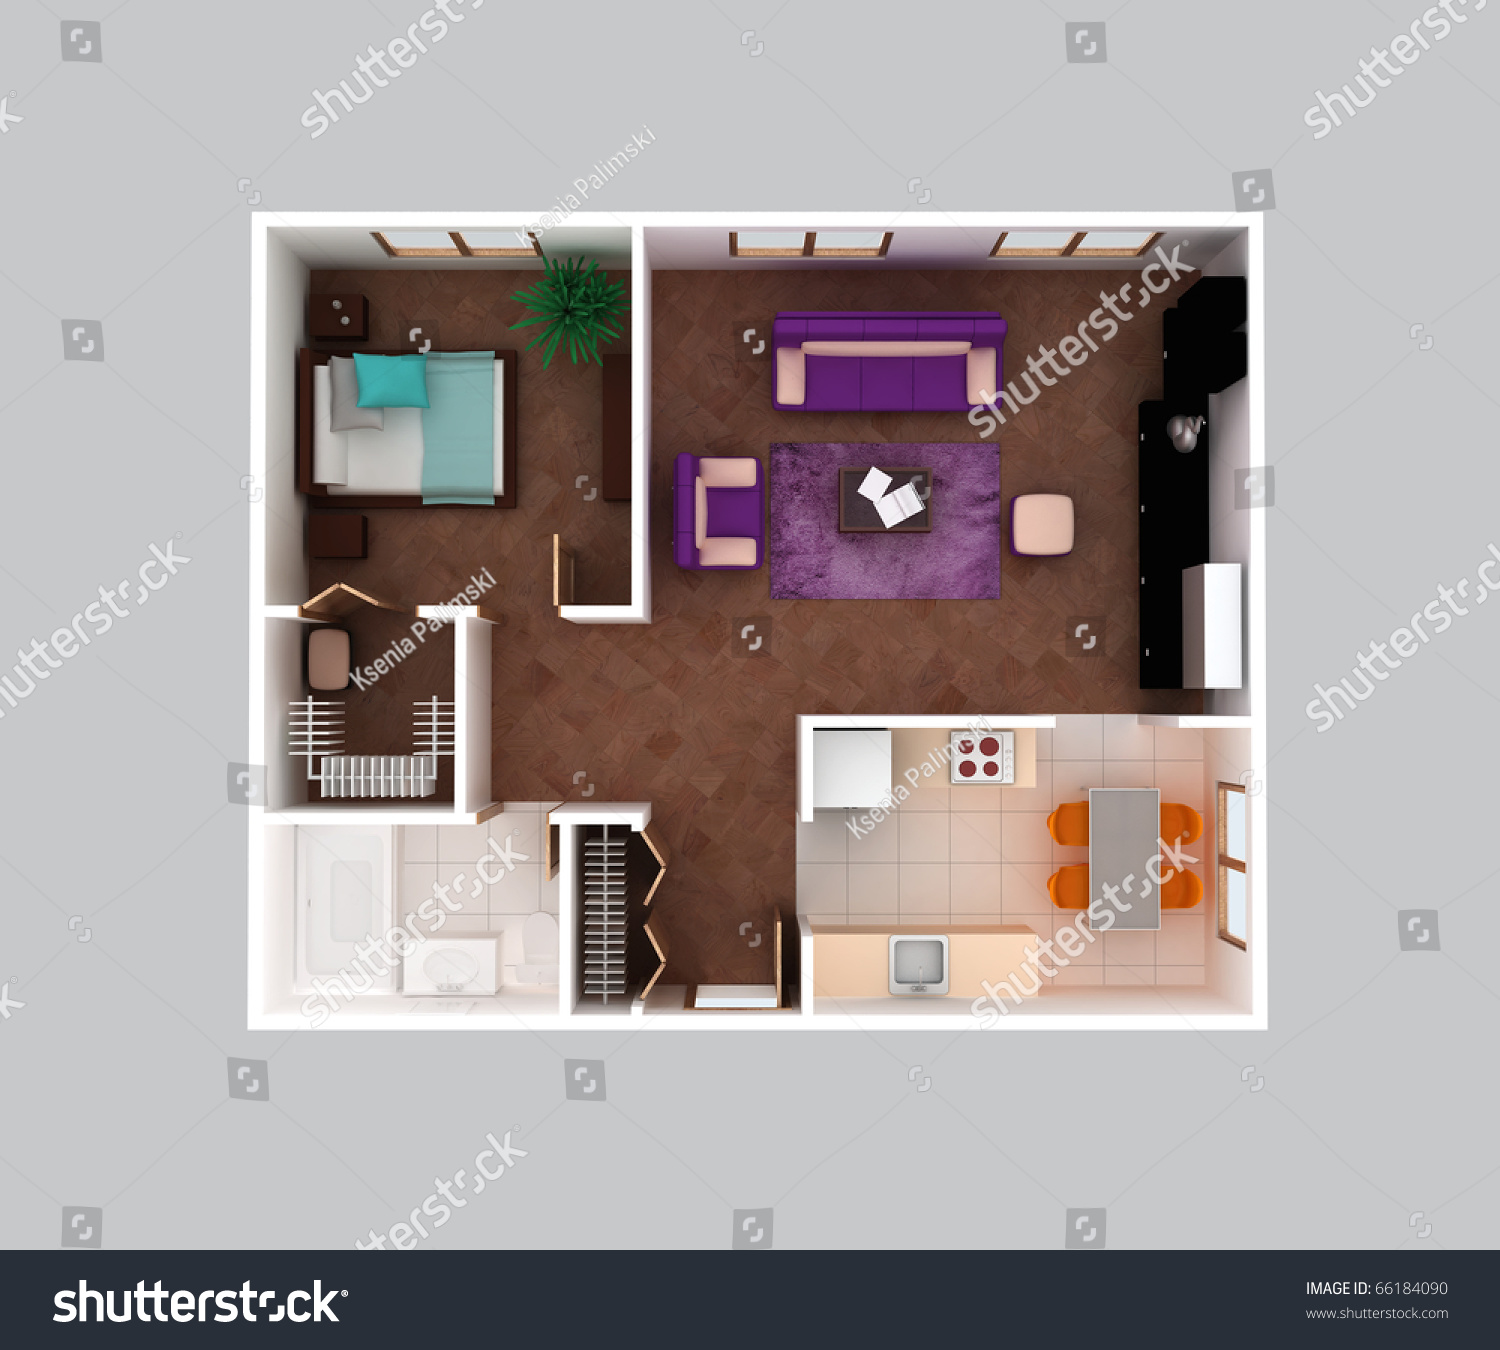 Plan view house clear 3d interior stock illustration for Kitchen dining hall design